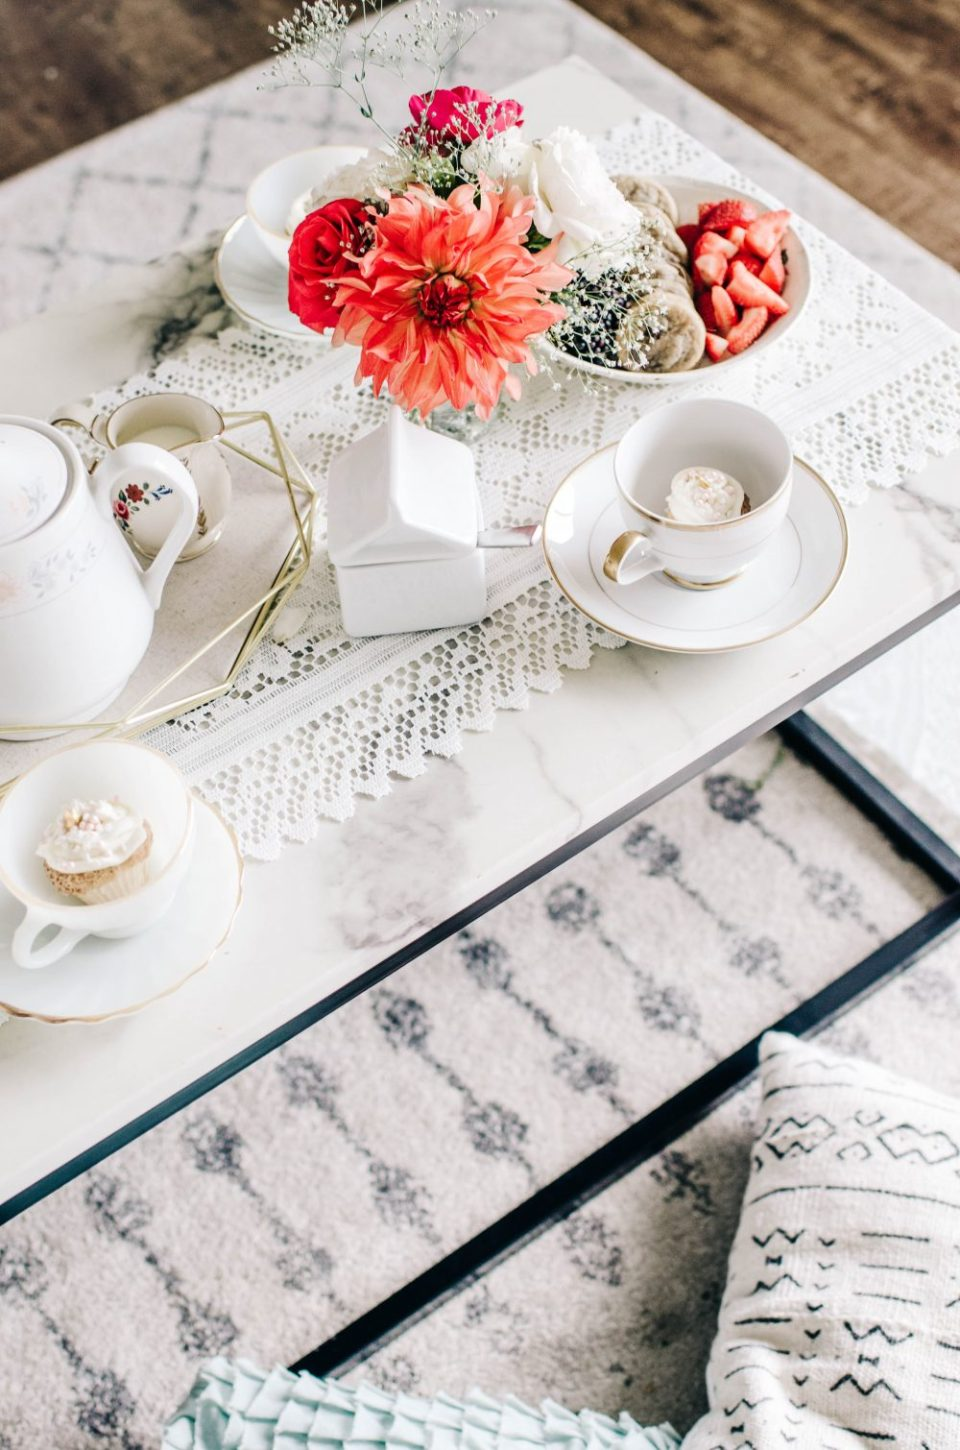 High Tea Themed Second Birthday Party Idea | Party Decor Ideas and Inspiration